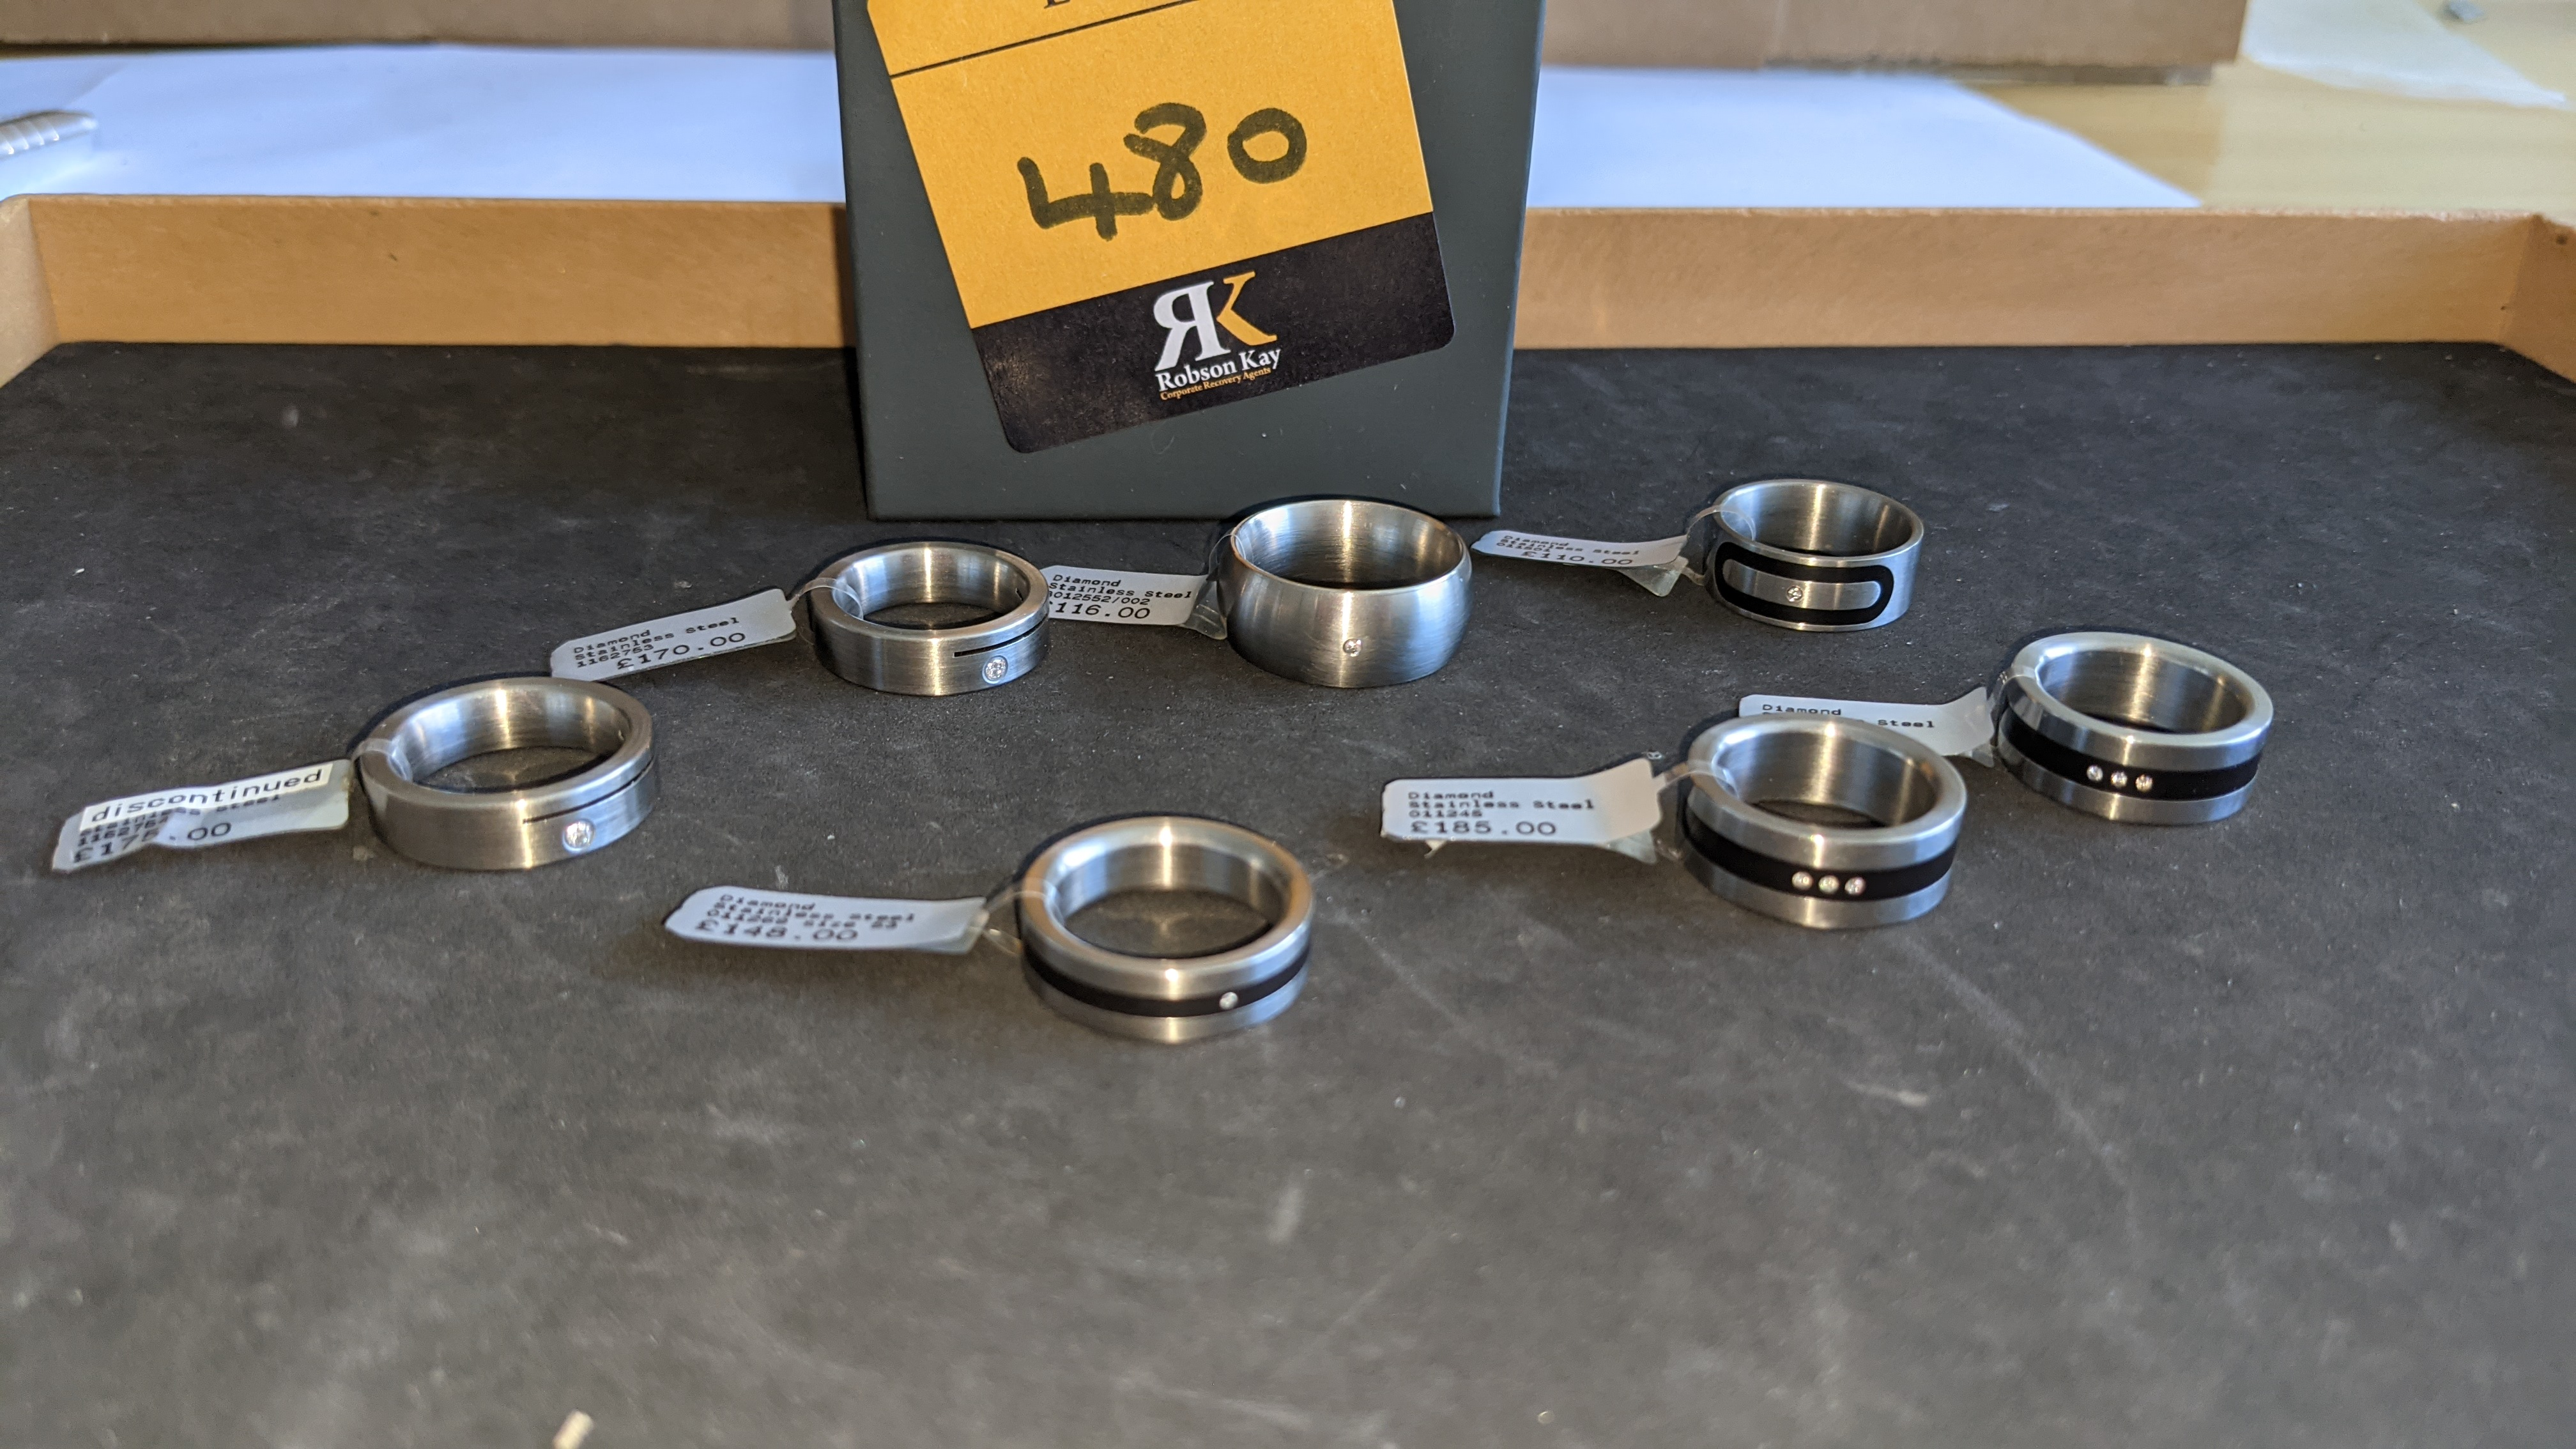 7 off assorted stainless steel & diamond rings. RRPs from £110 - £185. Total RRP £1,089 - Image 3 of 12